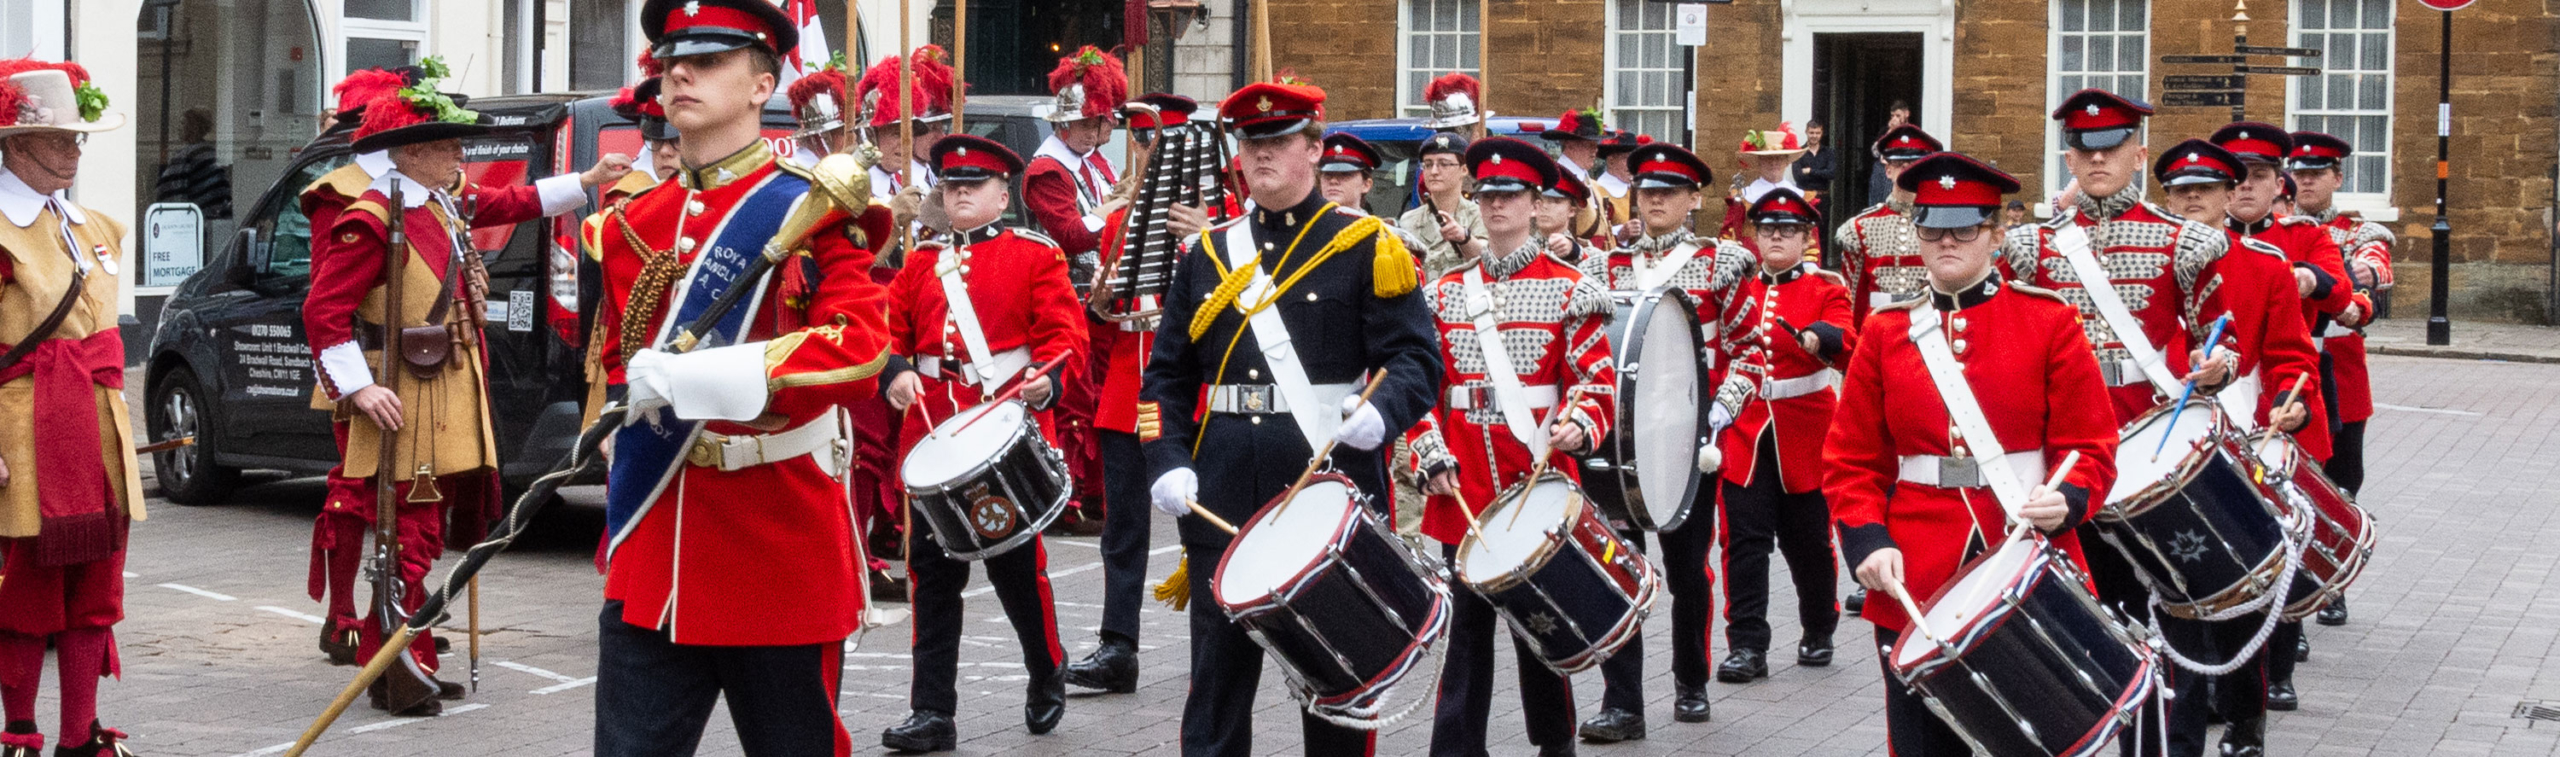 Marching Band of Cadets Northamptonshire